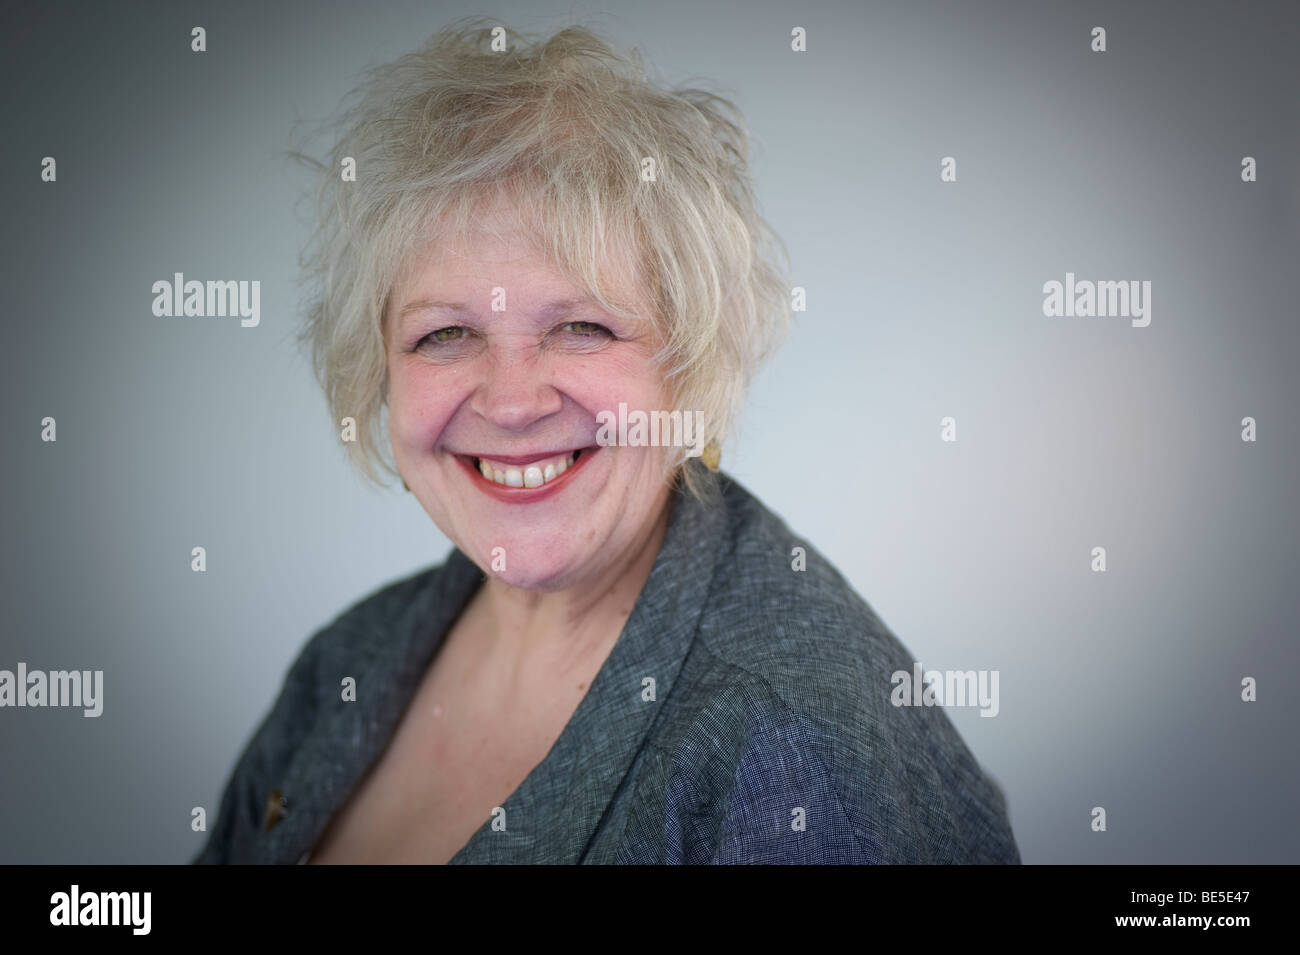 Liz Lochhead at the Edinburgh International Book Festival 2009, Scotland.UK - Stock Image